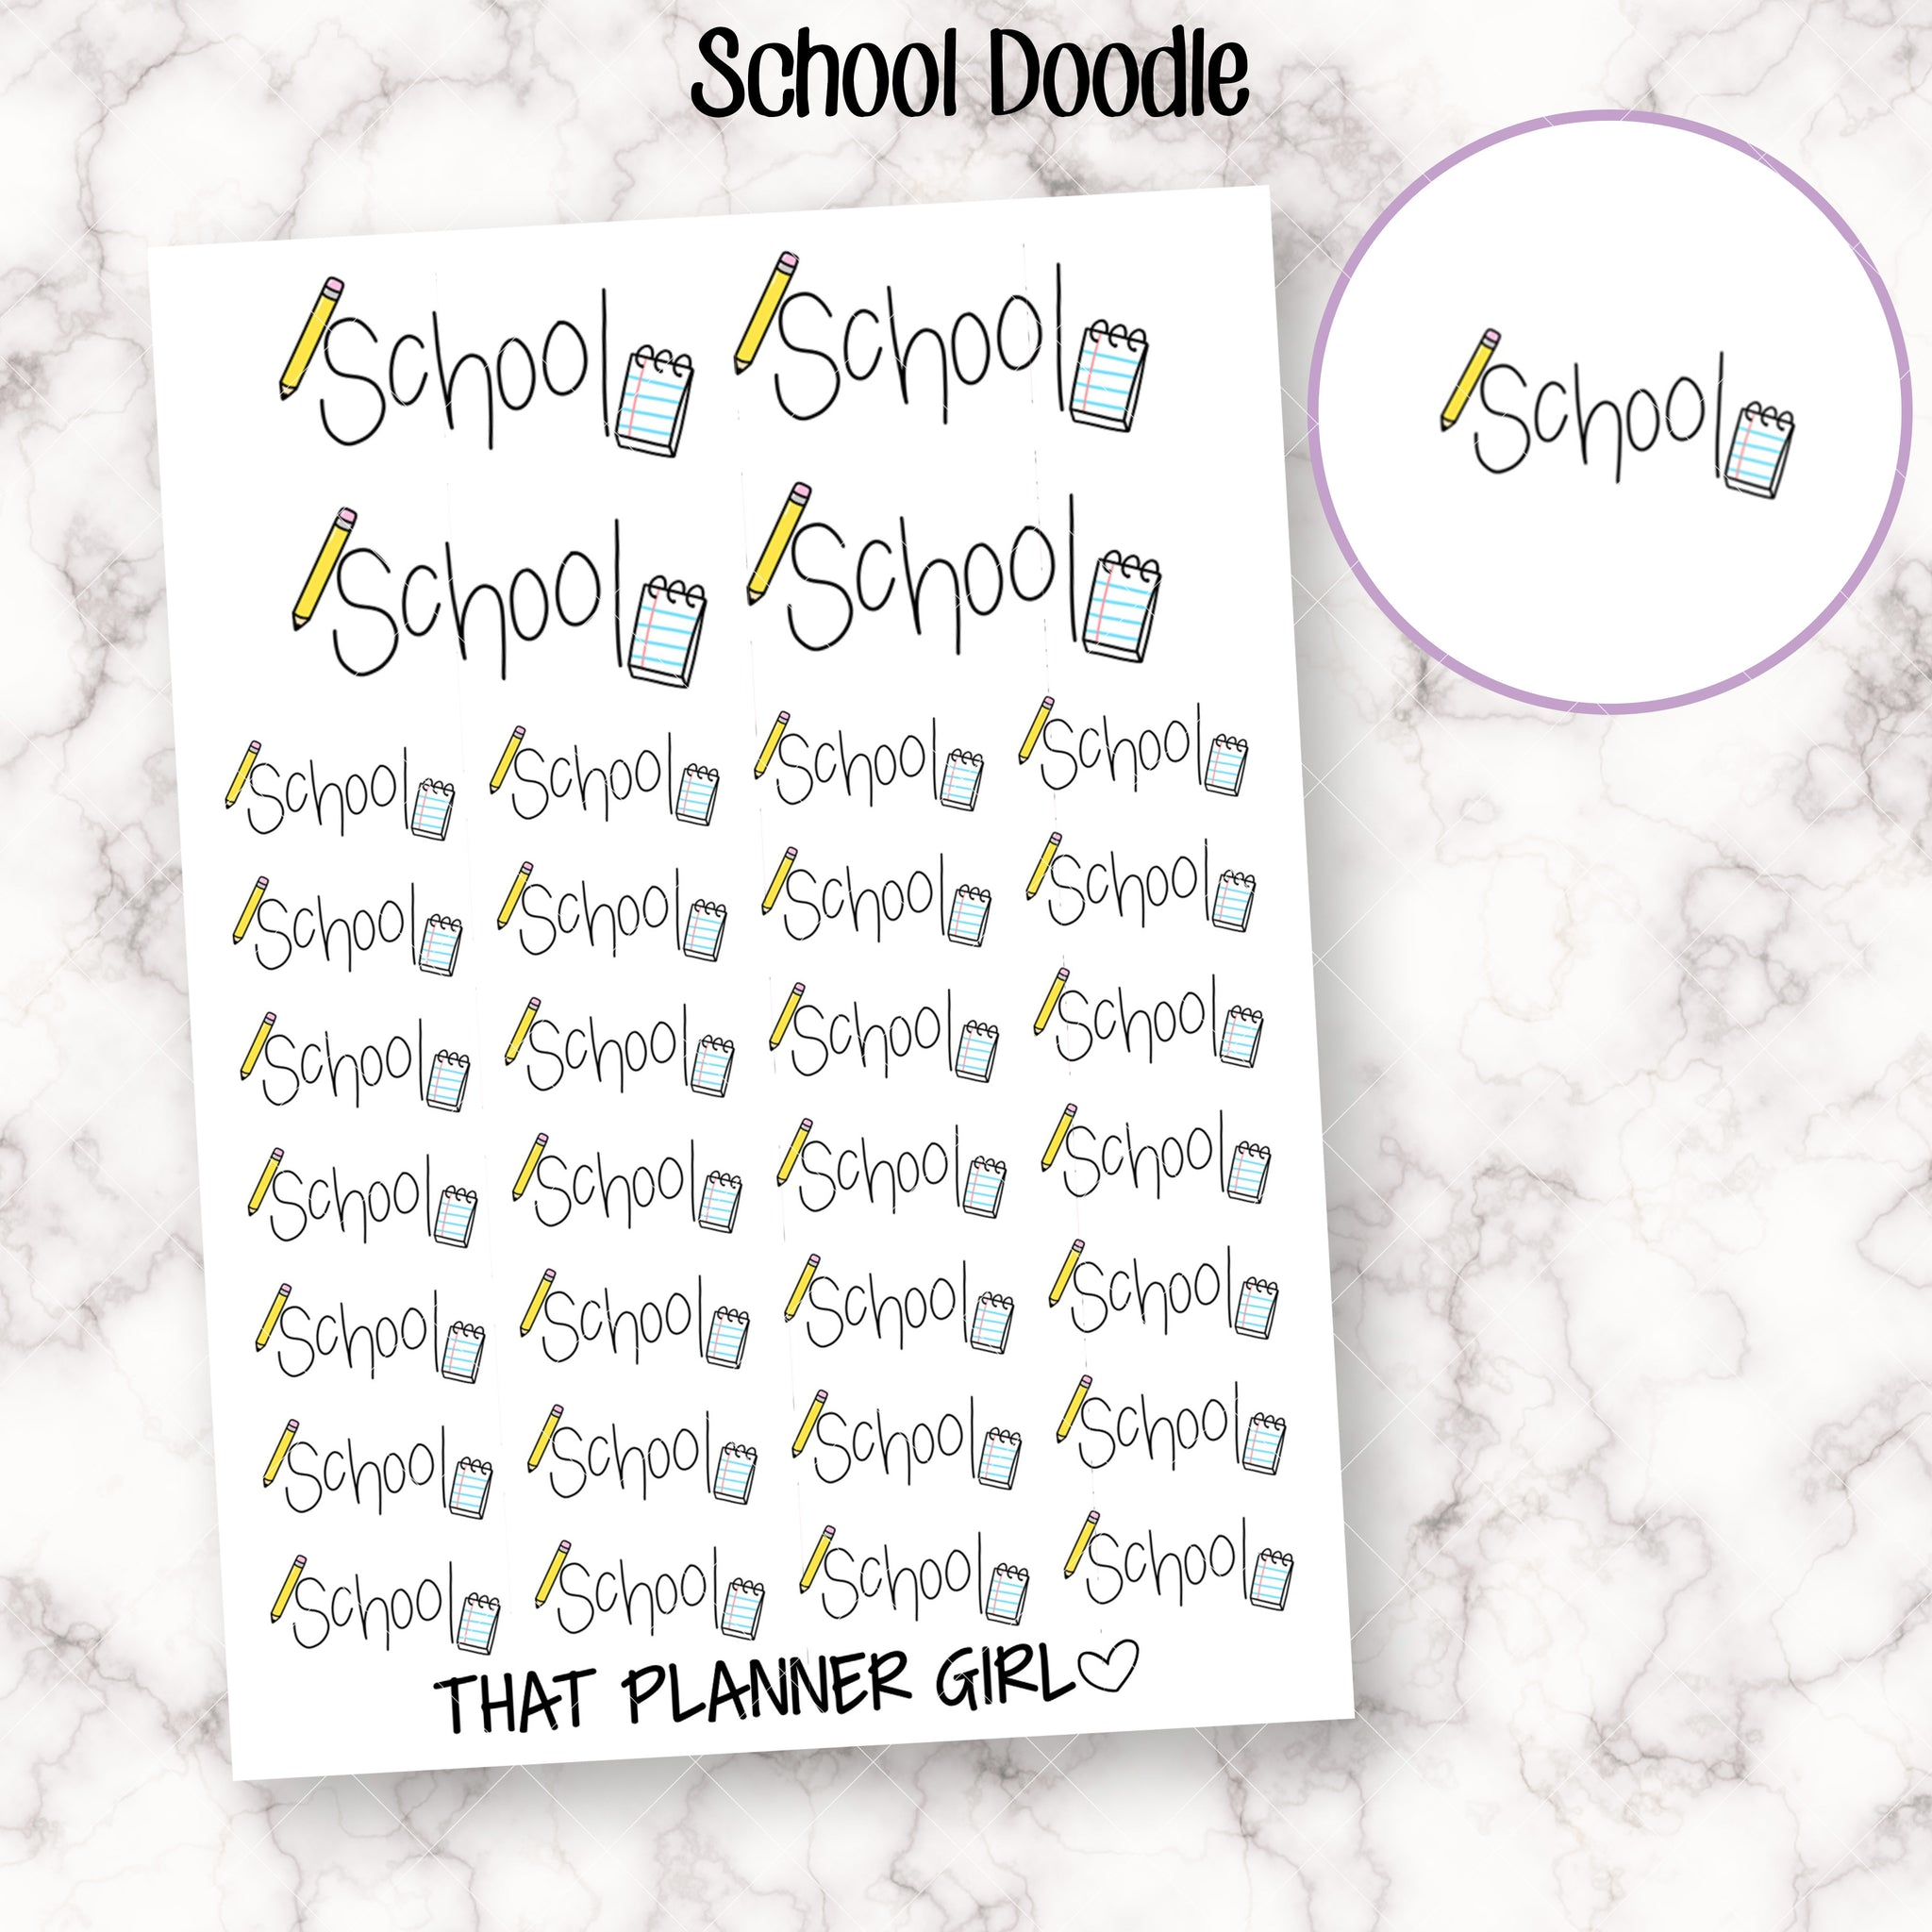 School Doodle Text with Icon Stickers